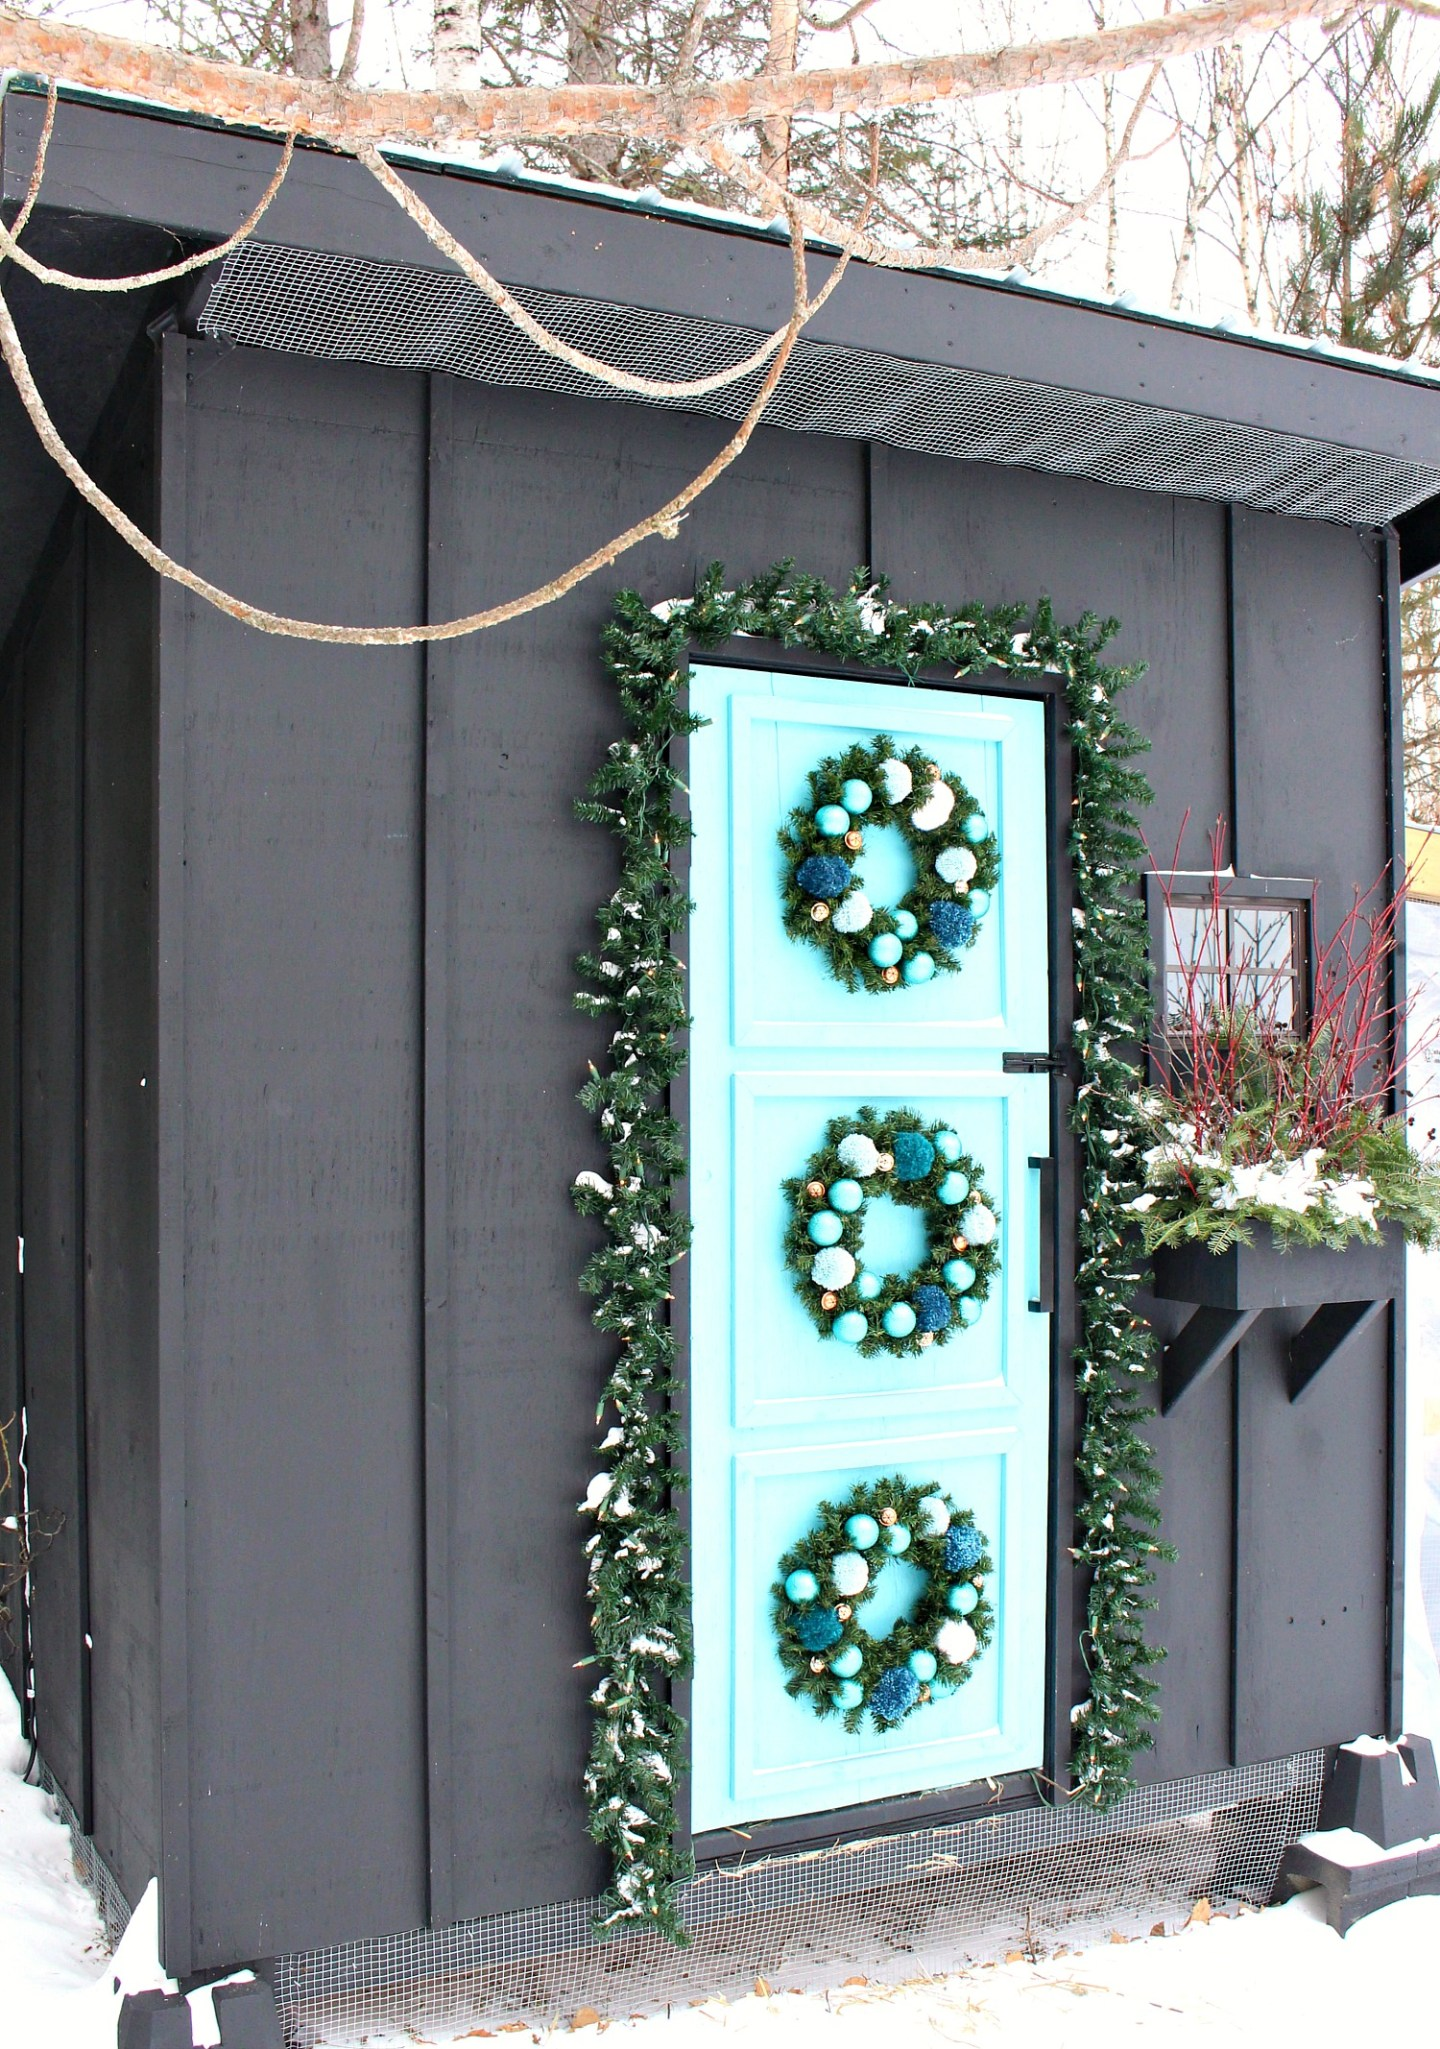 How to Decorate a Wreath Ideas